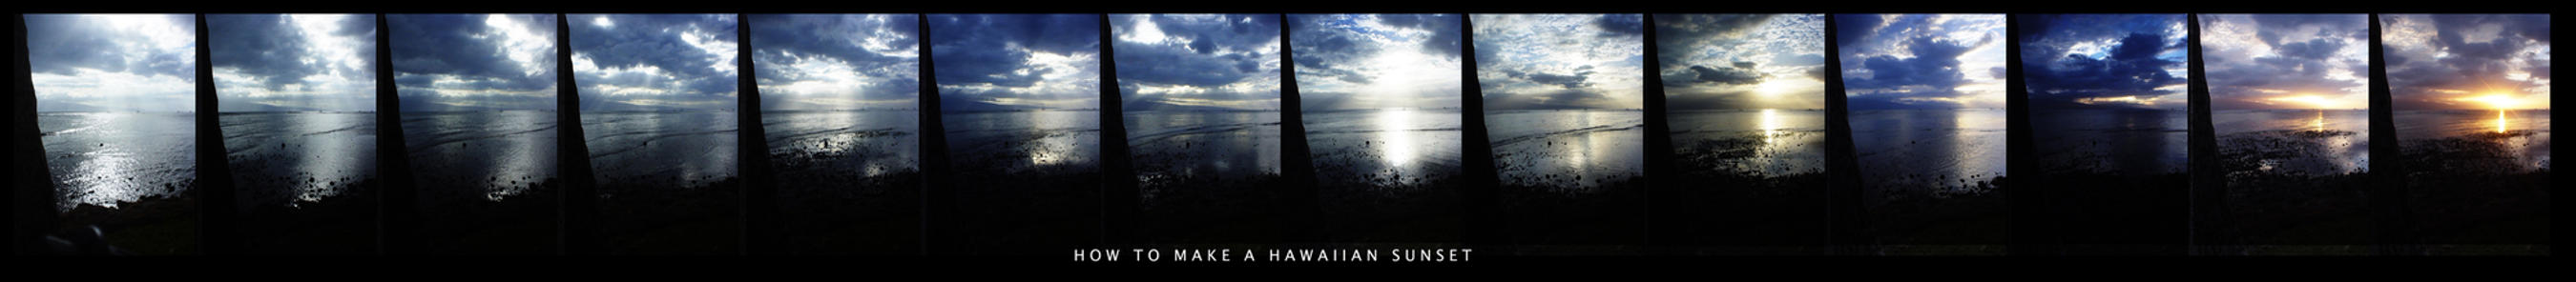 How to Make a Hawaiian Sunset by auctivsrf